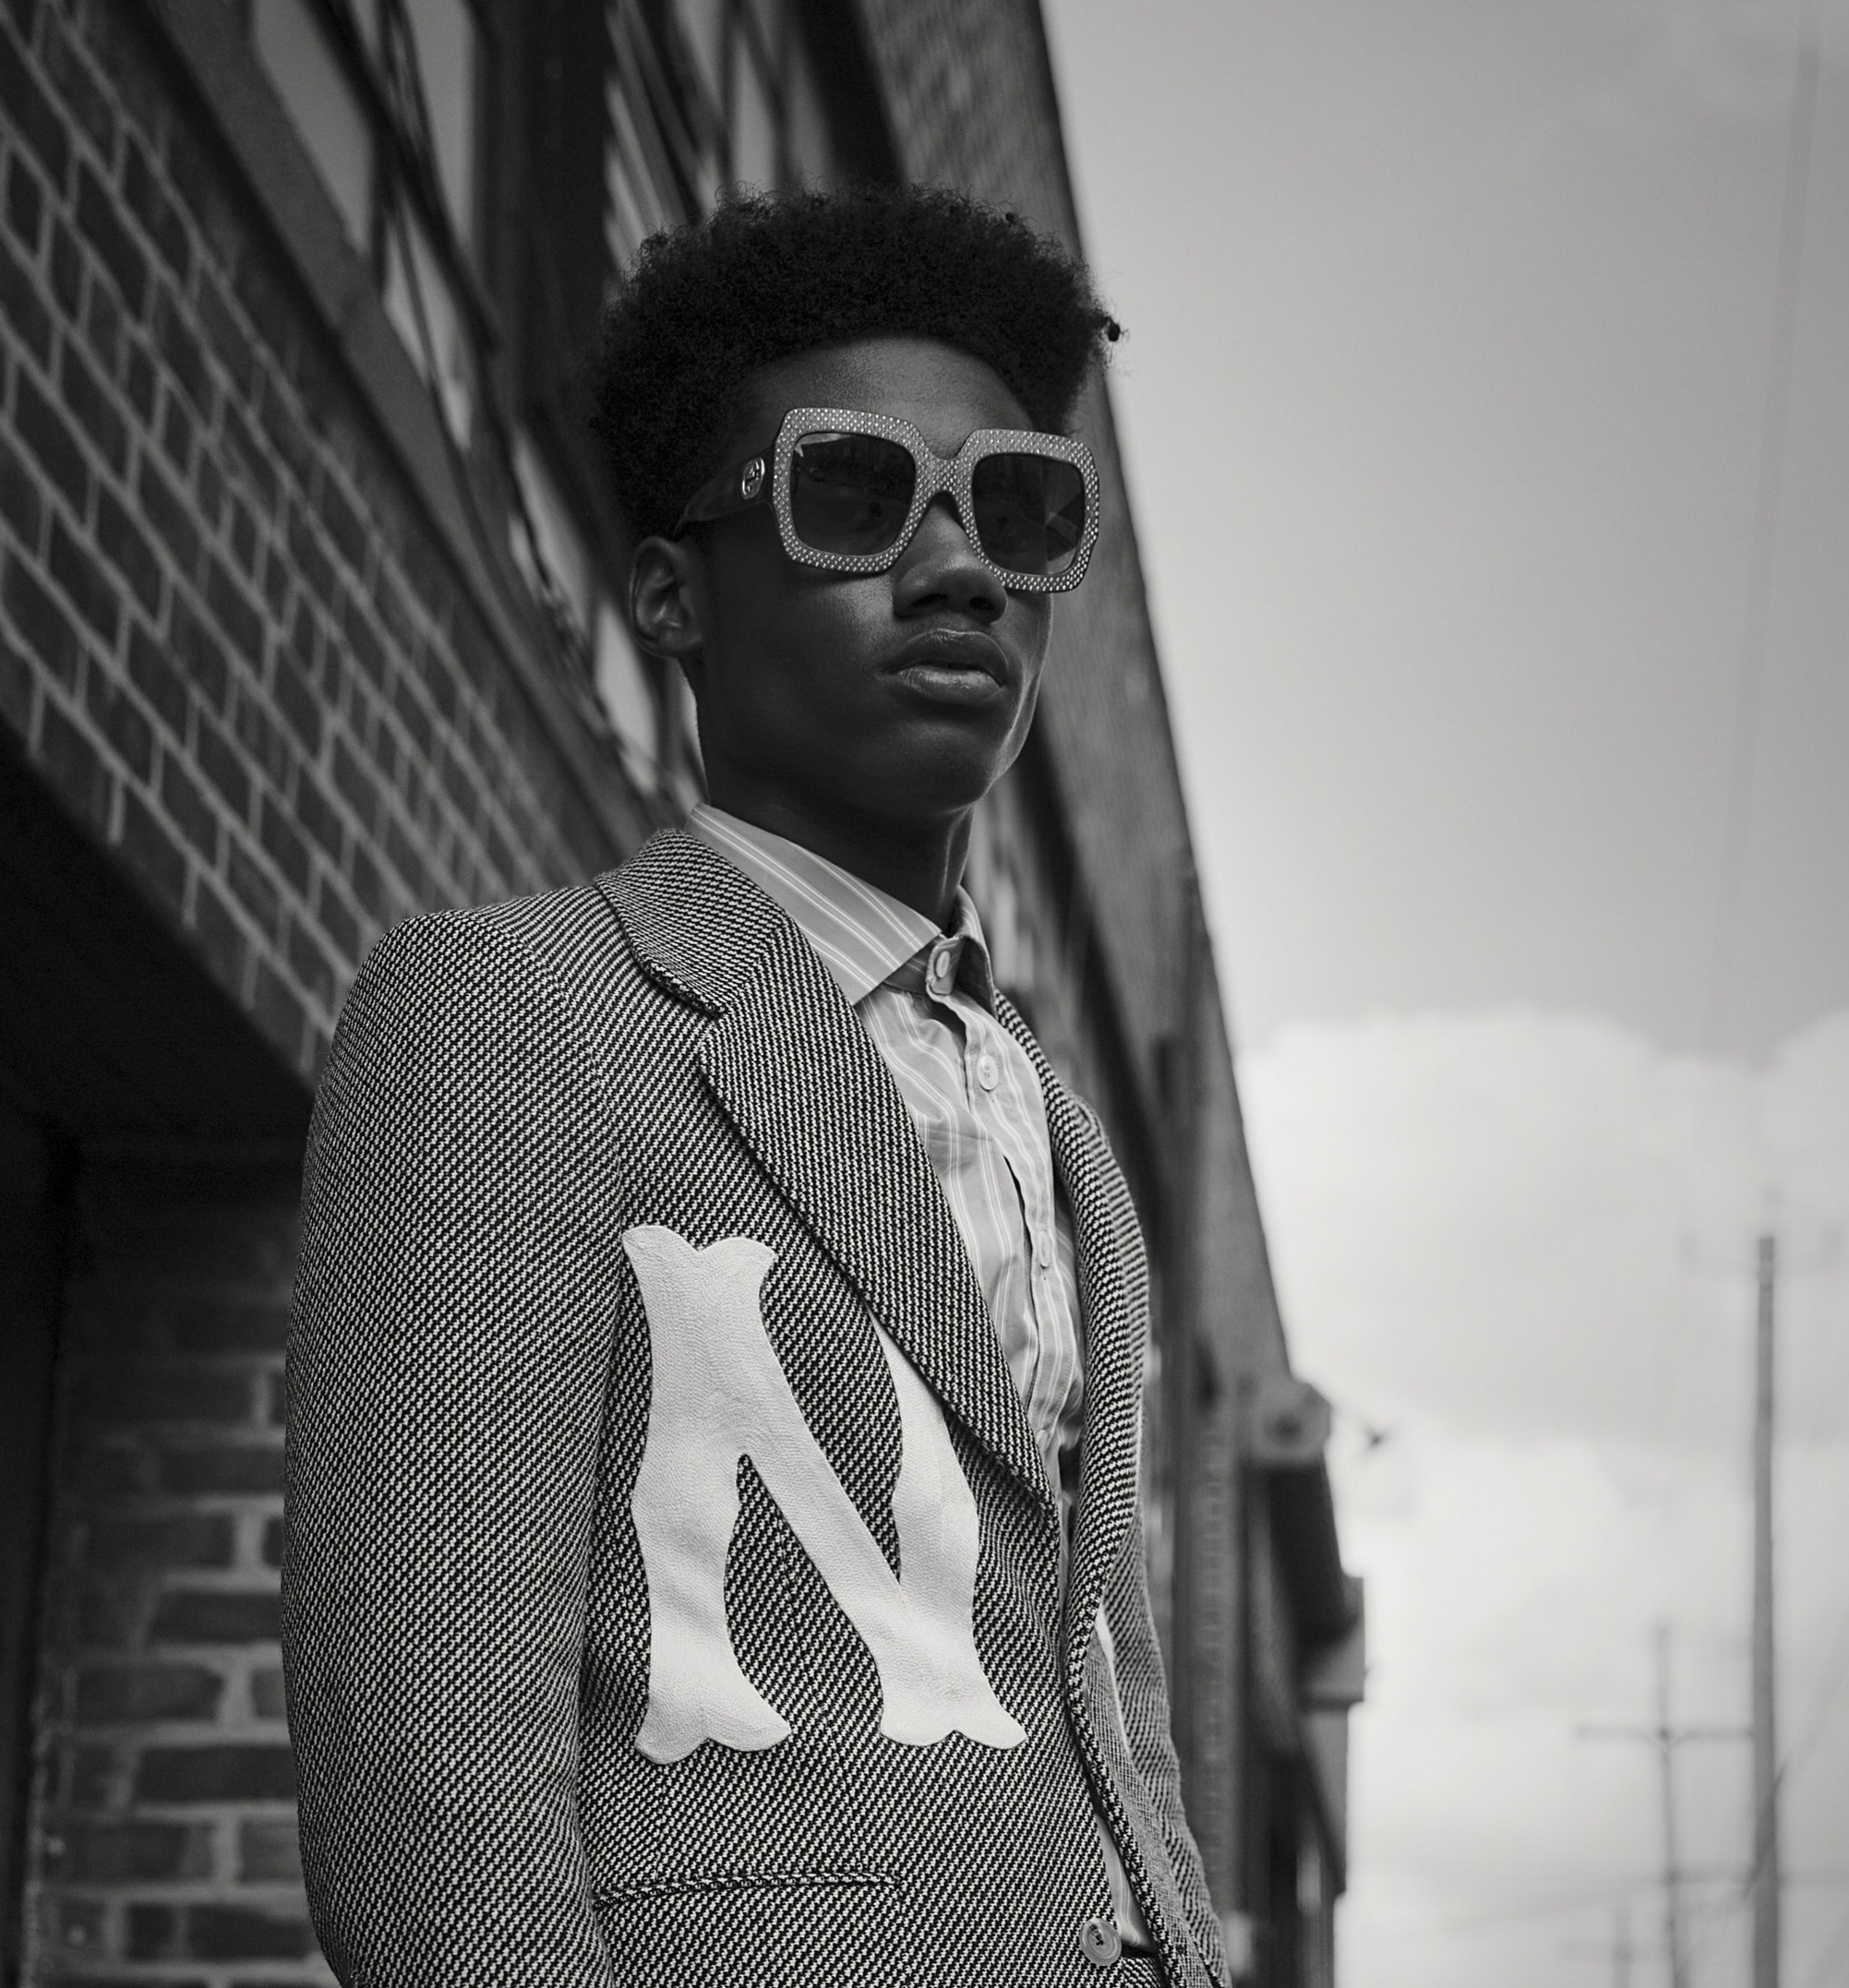 L'Officiel USA: Modern New York Sophistication - In an era when the boundary between formalwear and streetwear is ever more blurred, tailored pieces mingle with graphics, logomania, and enormous shades for the coolest Fall 2018 menswear inspiration.